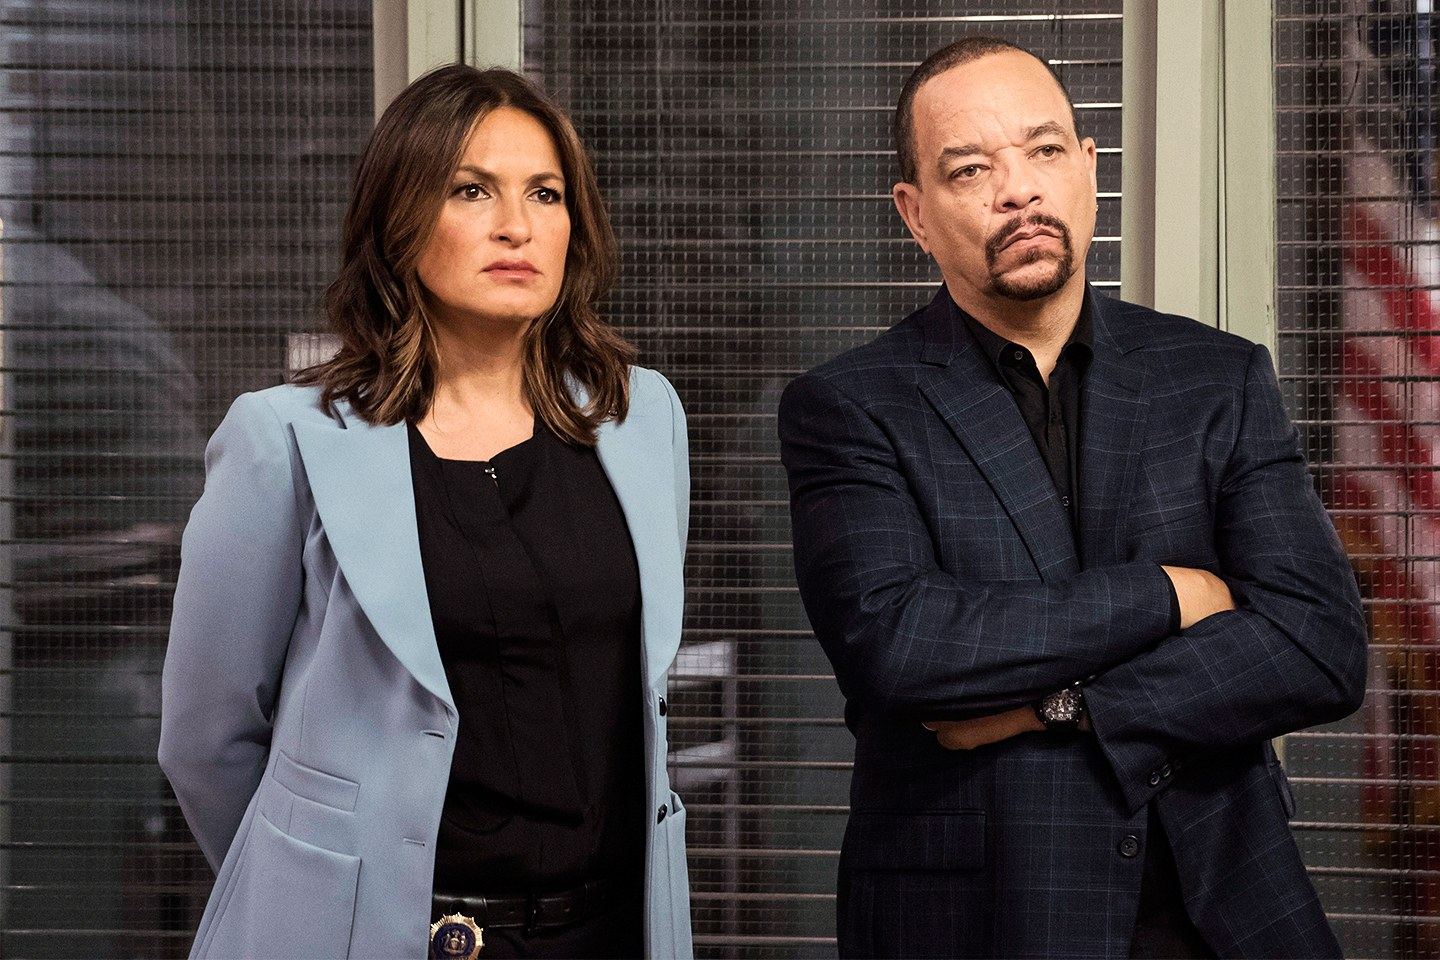 Law Amp Order Svu Teaches Viewers About The Importance Of